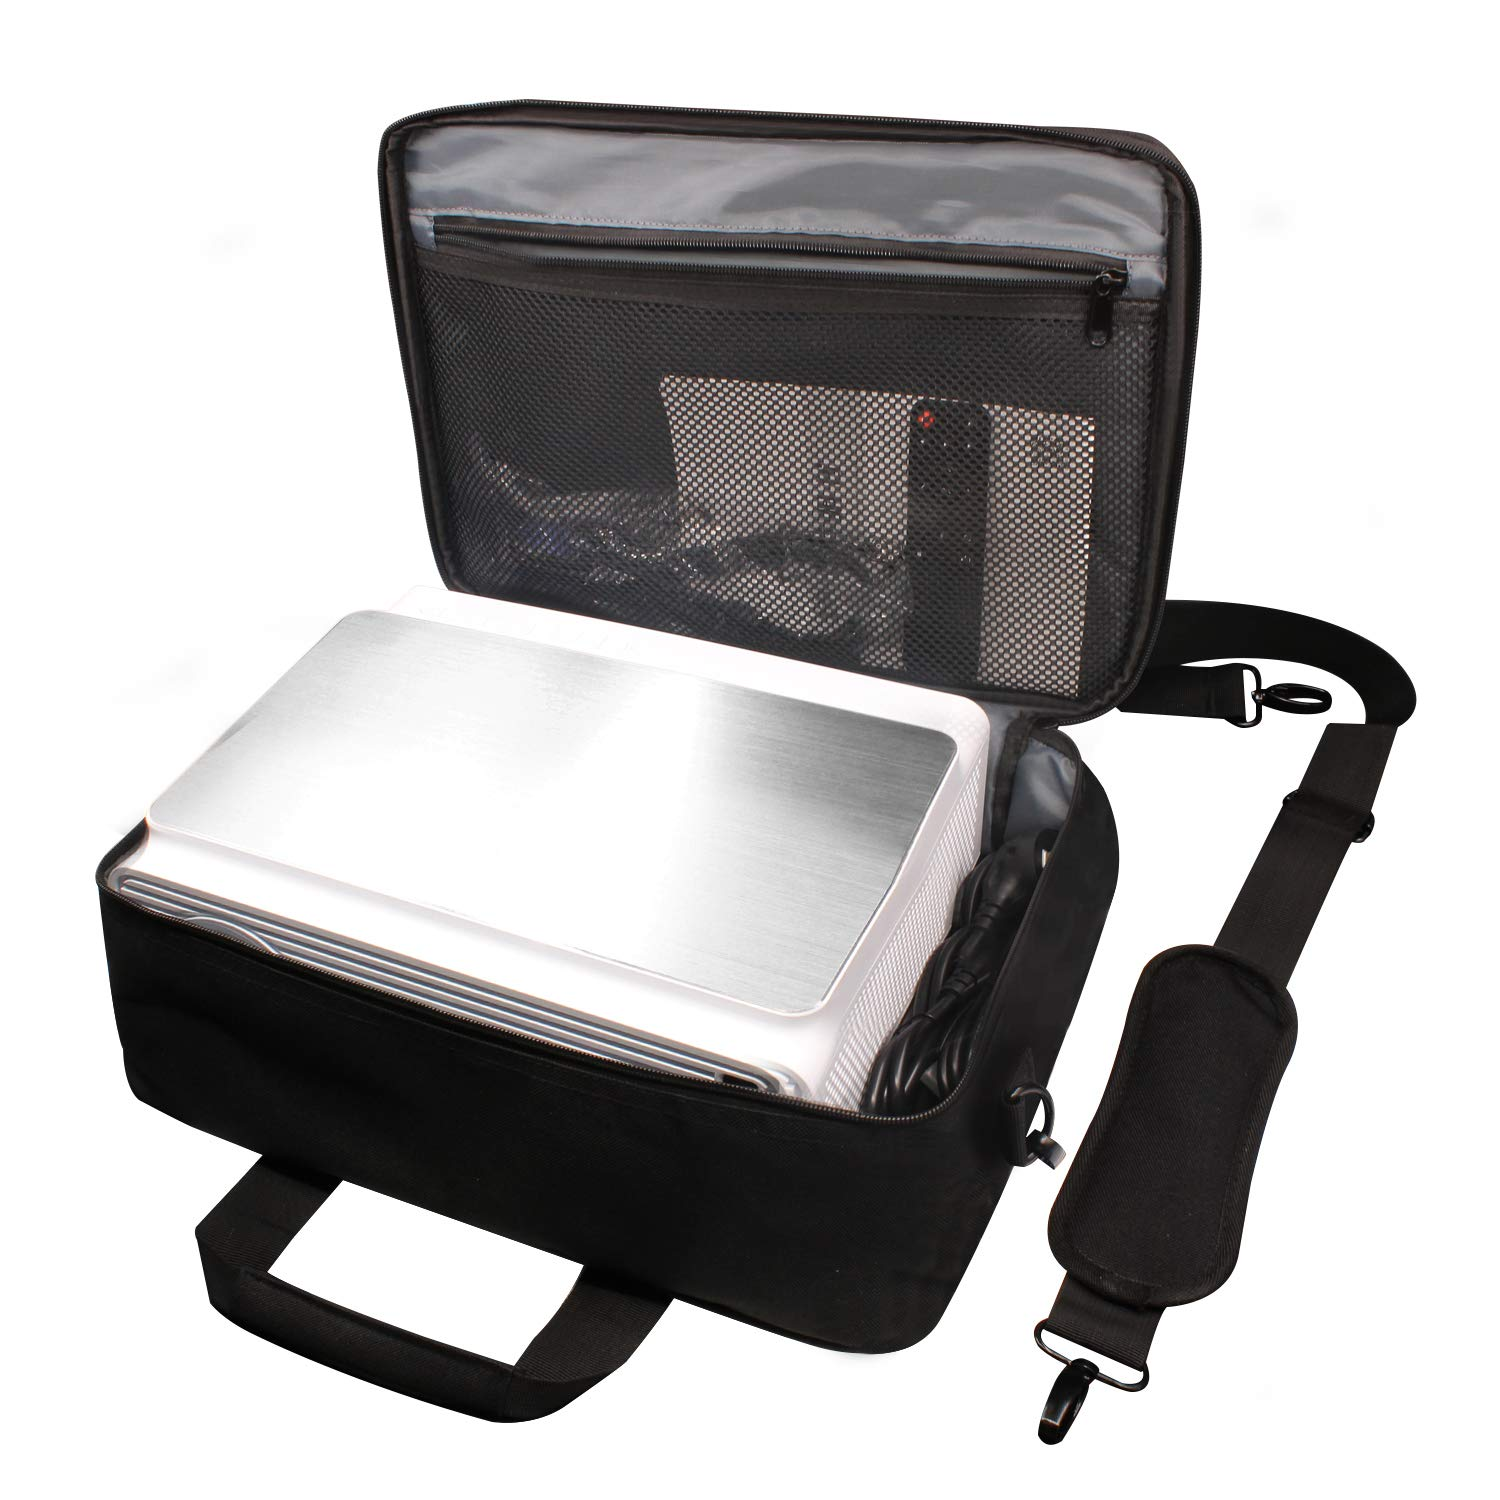 ERISAN Projector Case, Large Size, 16x11 inches,Projector Carrying Bag with Waterproof Hard Shell Frame, for Epson, Acer, BenQ, LG etc by ERISAN